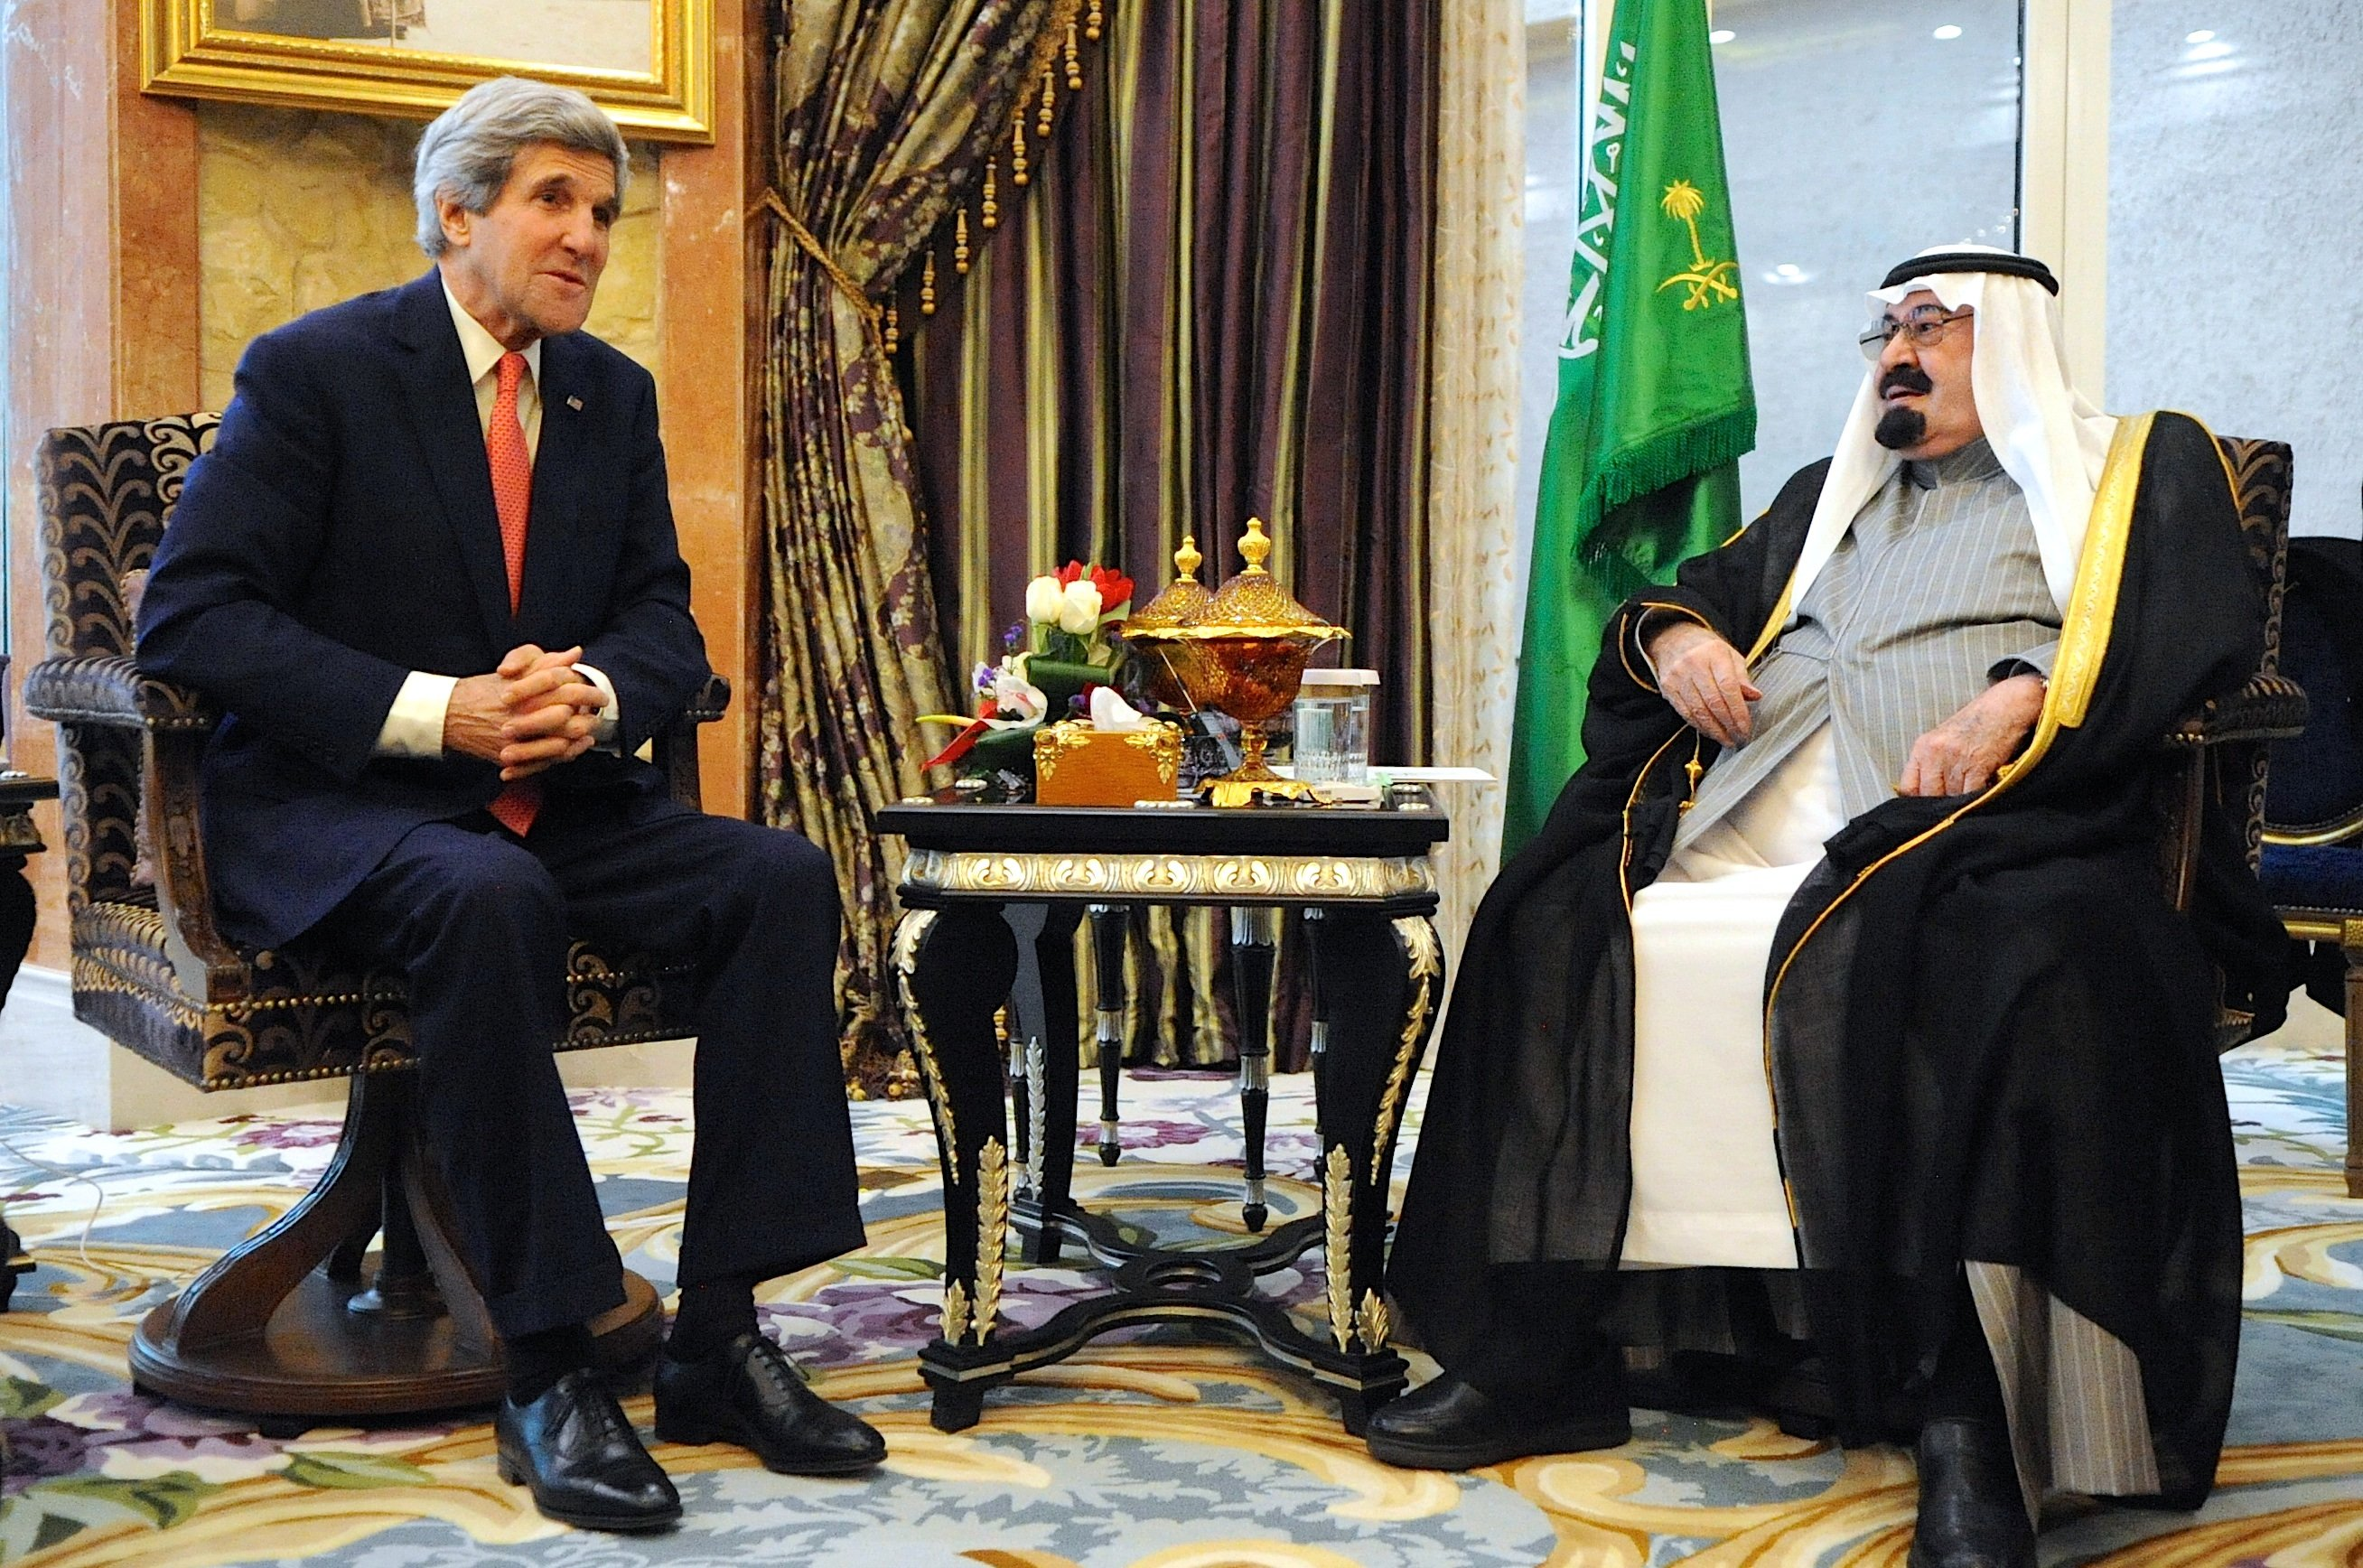 US Secretary of State John Kerry meets with the late King of Saudi Arabia, Abdullah bin Abdulaziz Al Saud who died in early 2015. US State Department Photo